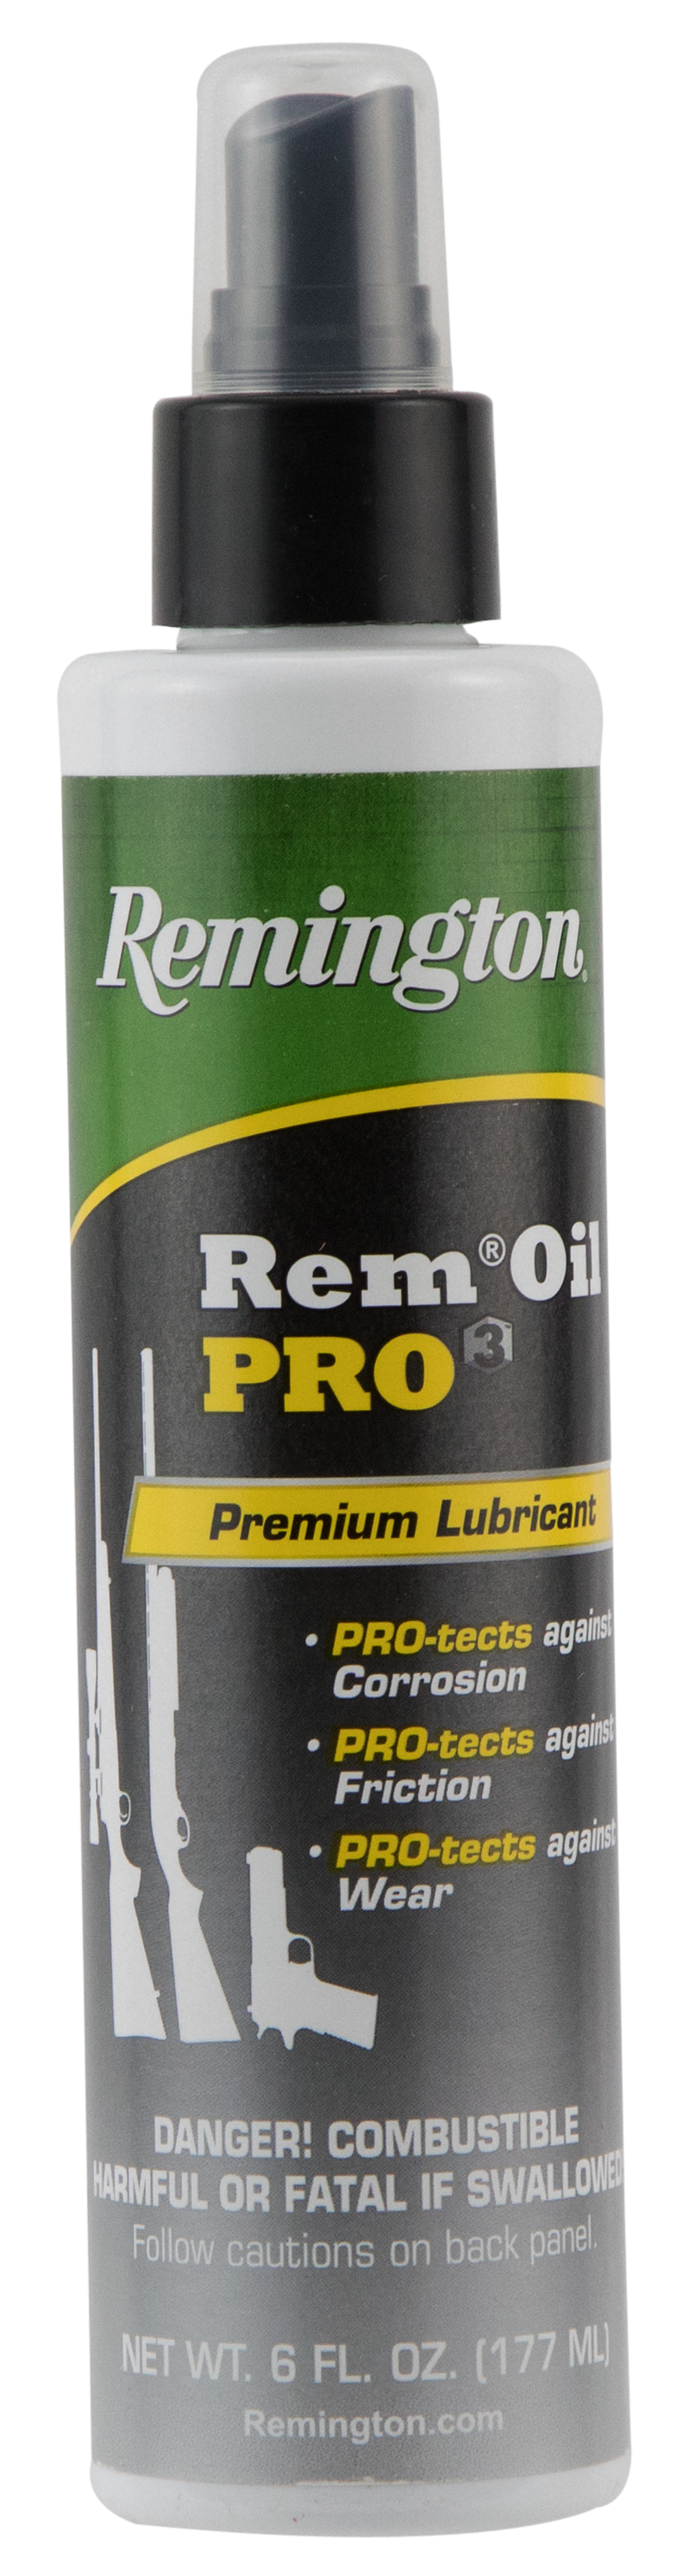 Remington Accessories 18920 Rem Oil Pro3 Lubricant/Protectant 6 oz